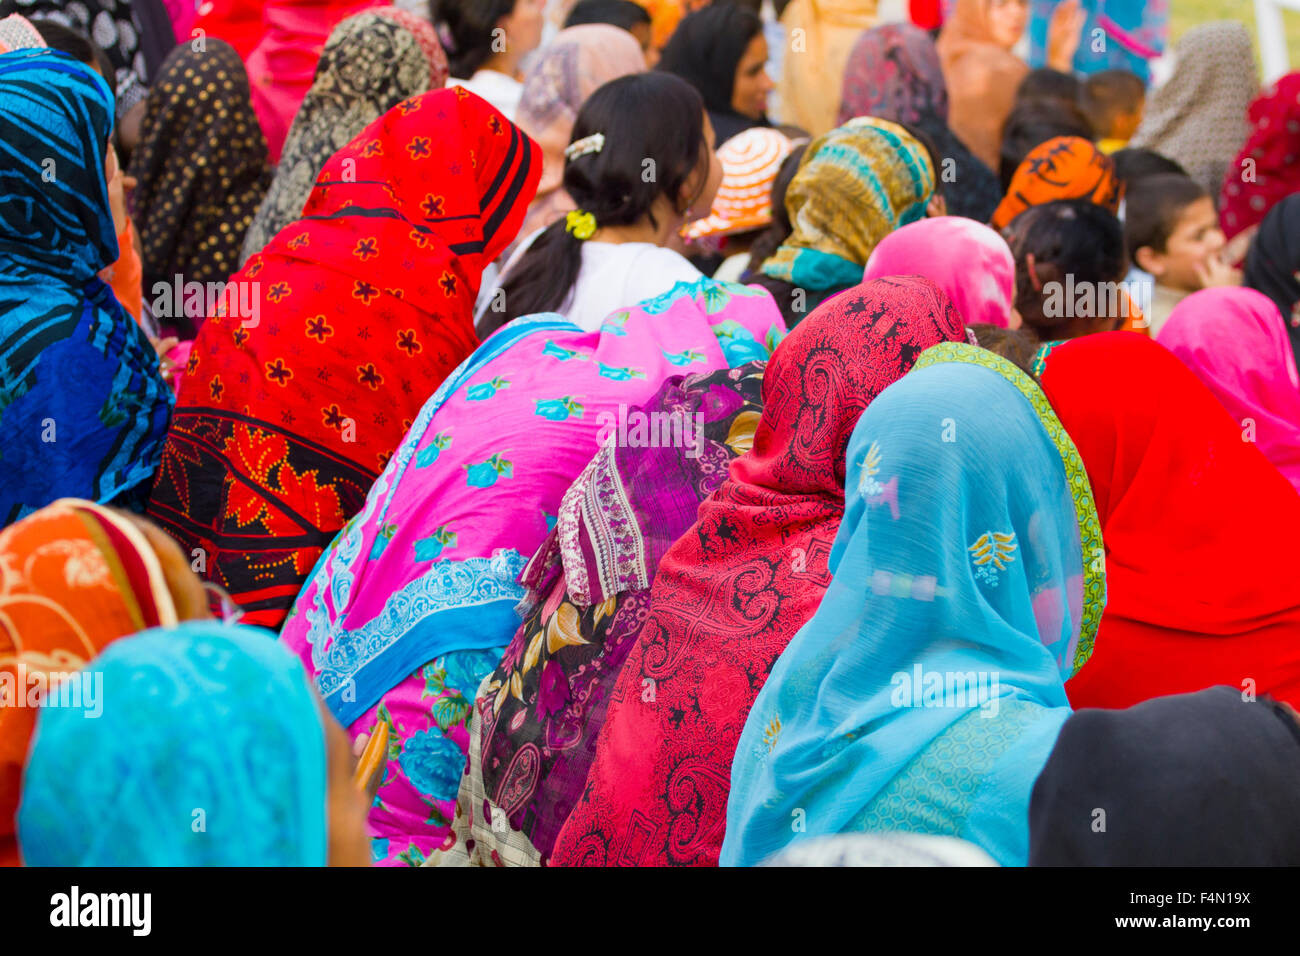 Muslim women wearing colorful headscarves, duppattas and hijabs - Stock Image